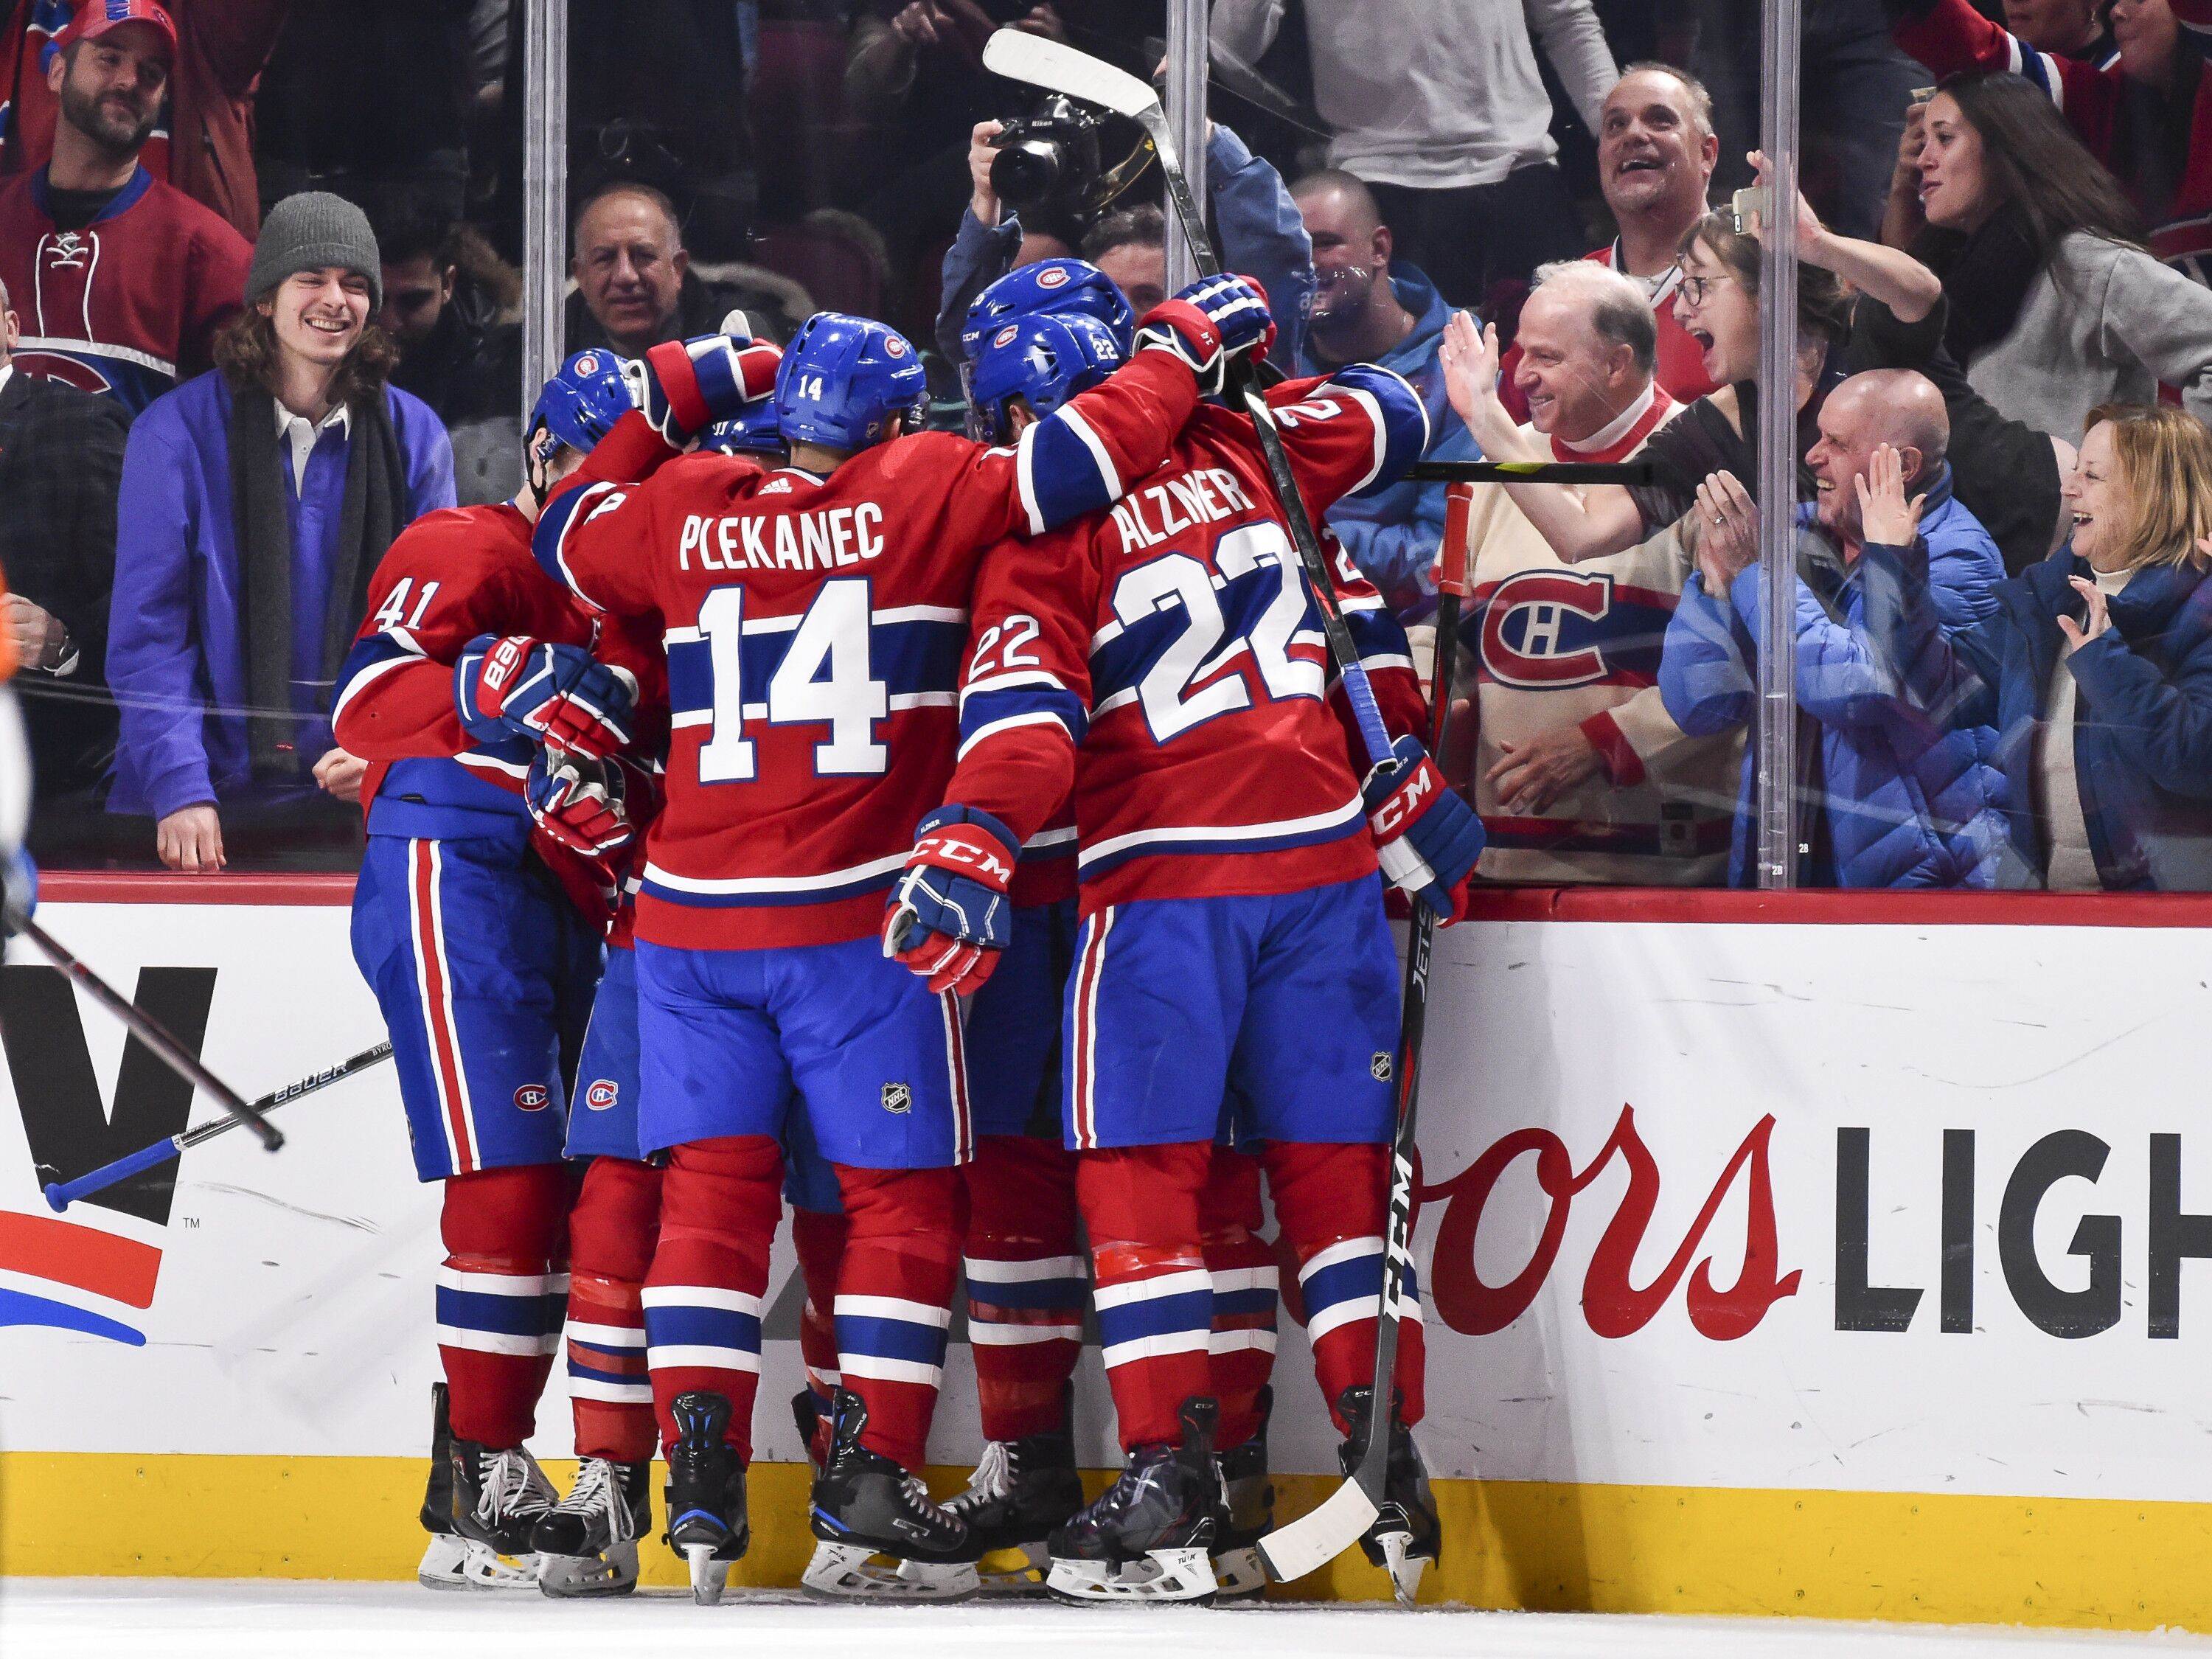 Montreal Canadiens: Addressing Pierre McGuire's recent comments